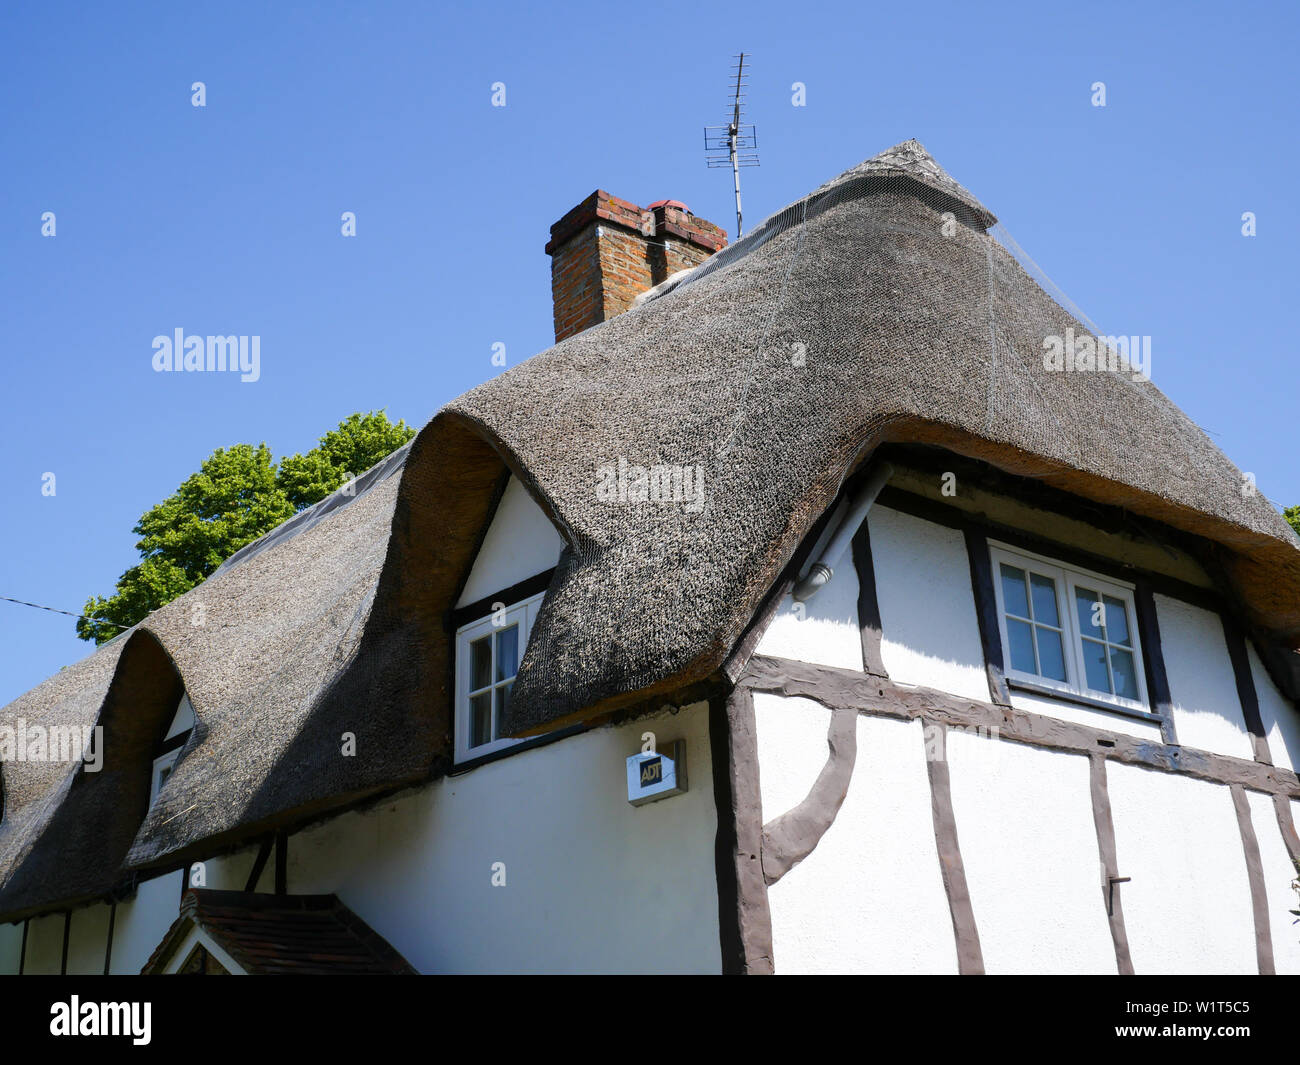 Tudor Beamed Thatched Cottage, South Stoke, Oxfordshire, England, UK, GB. - Stock Image